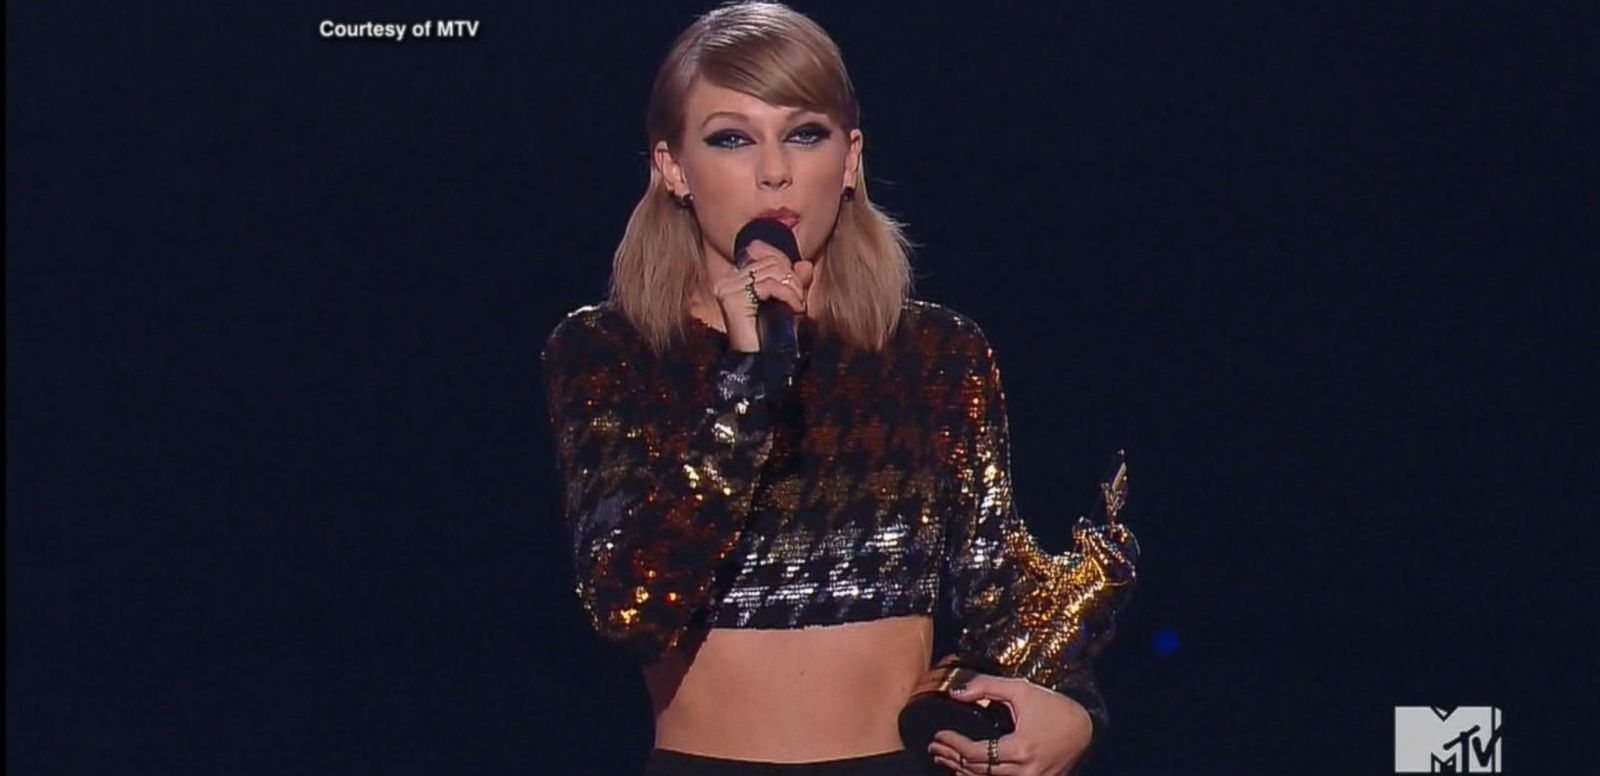 VIDEO: MTV's Video Music Awards: The Biggest Moments of the Night